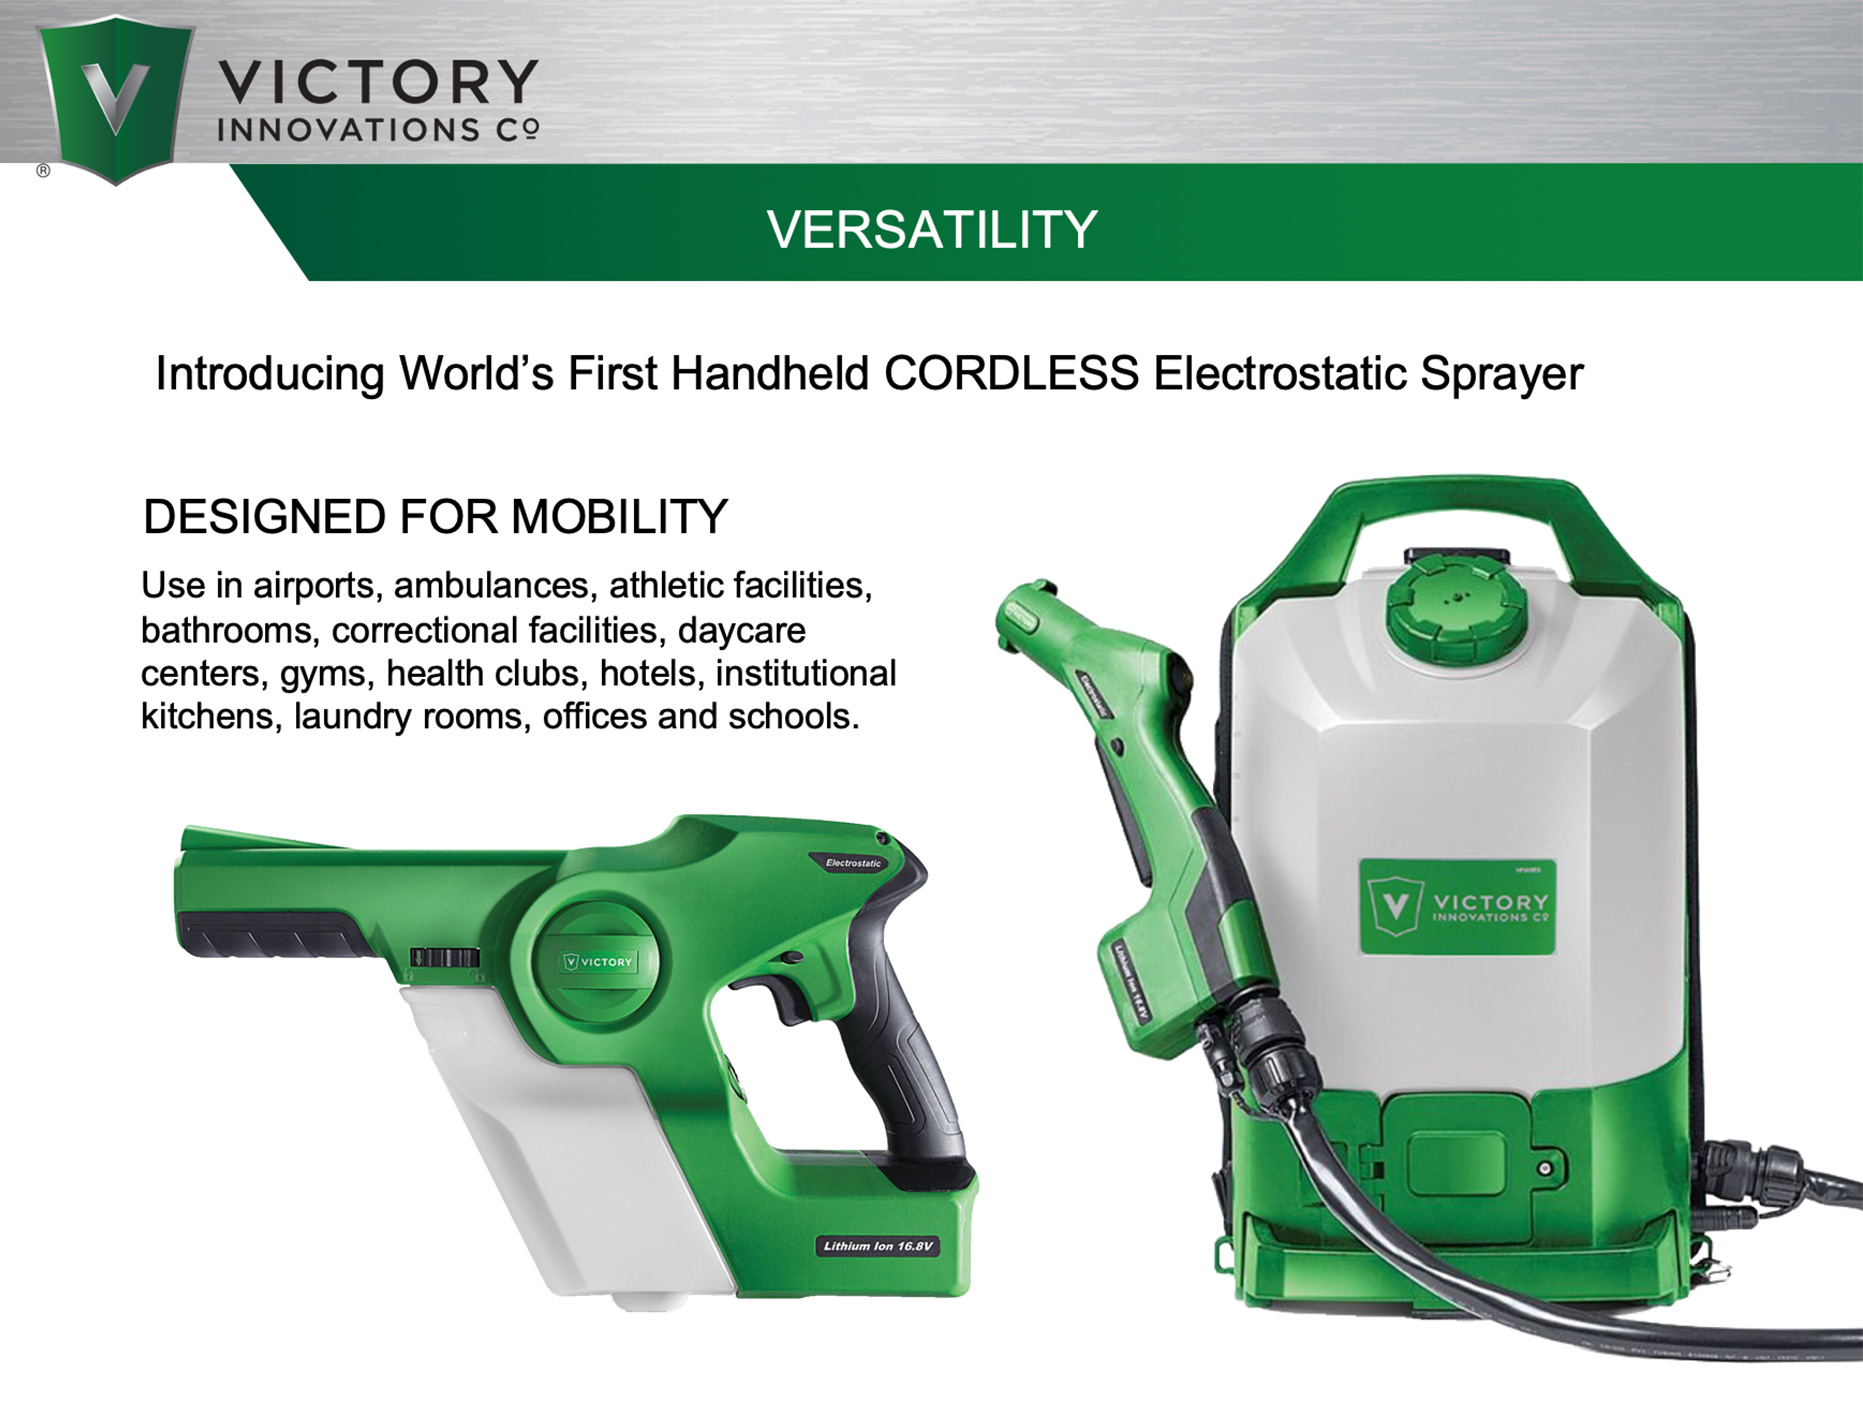 victory-product